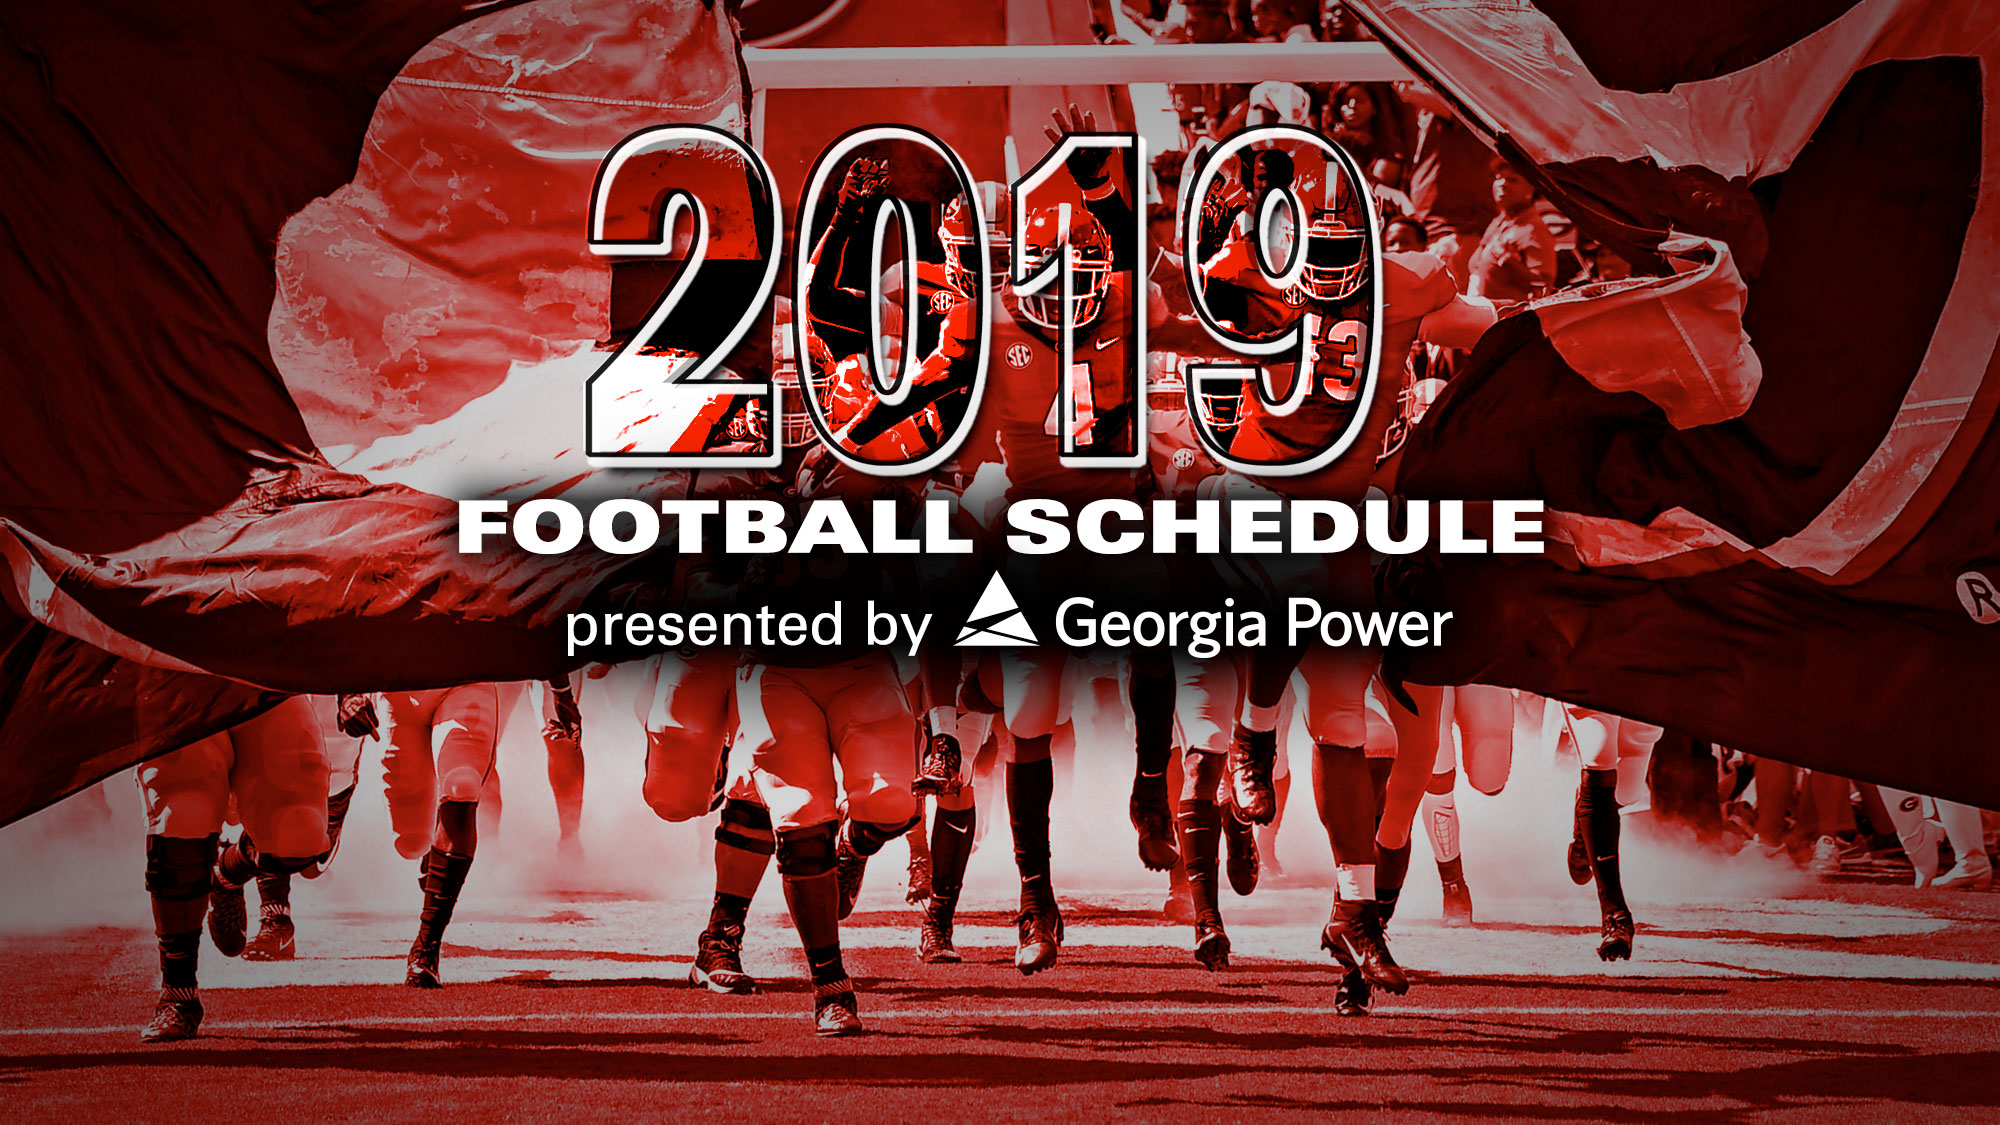 Texas A&M 2019 Calendar Notre Dame, Texas A&M Highlight 2019 Football Schedule